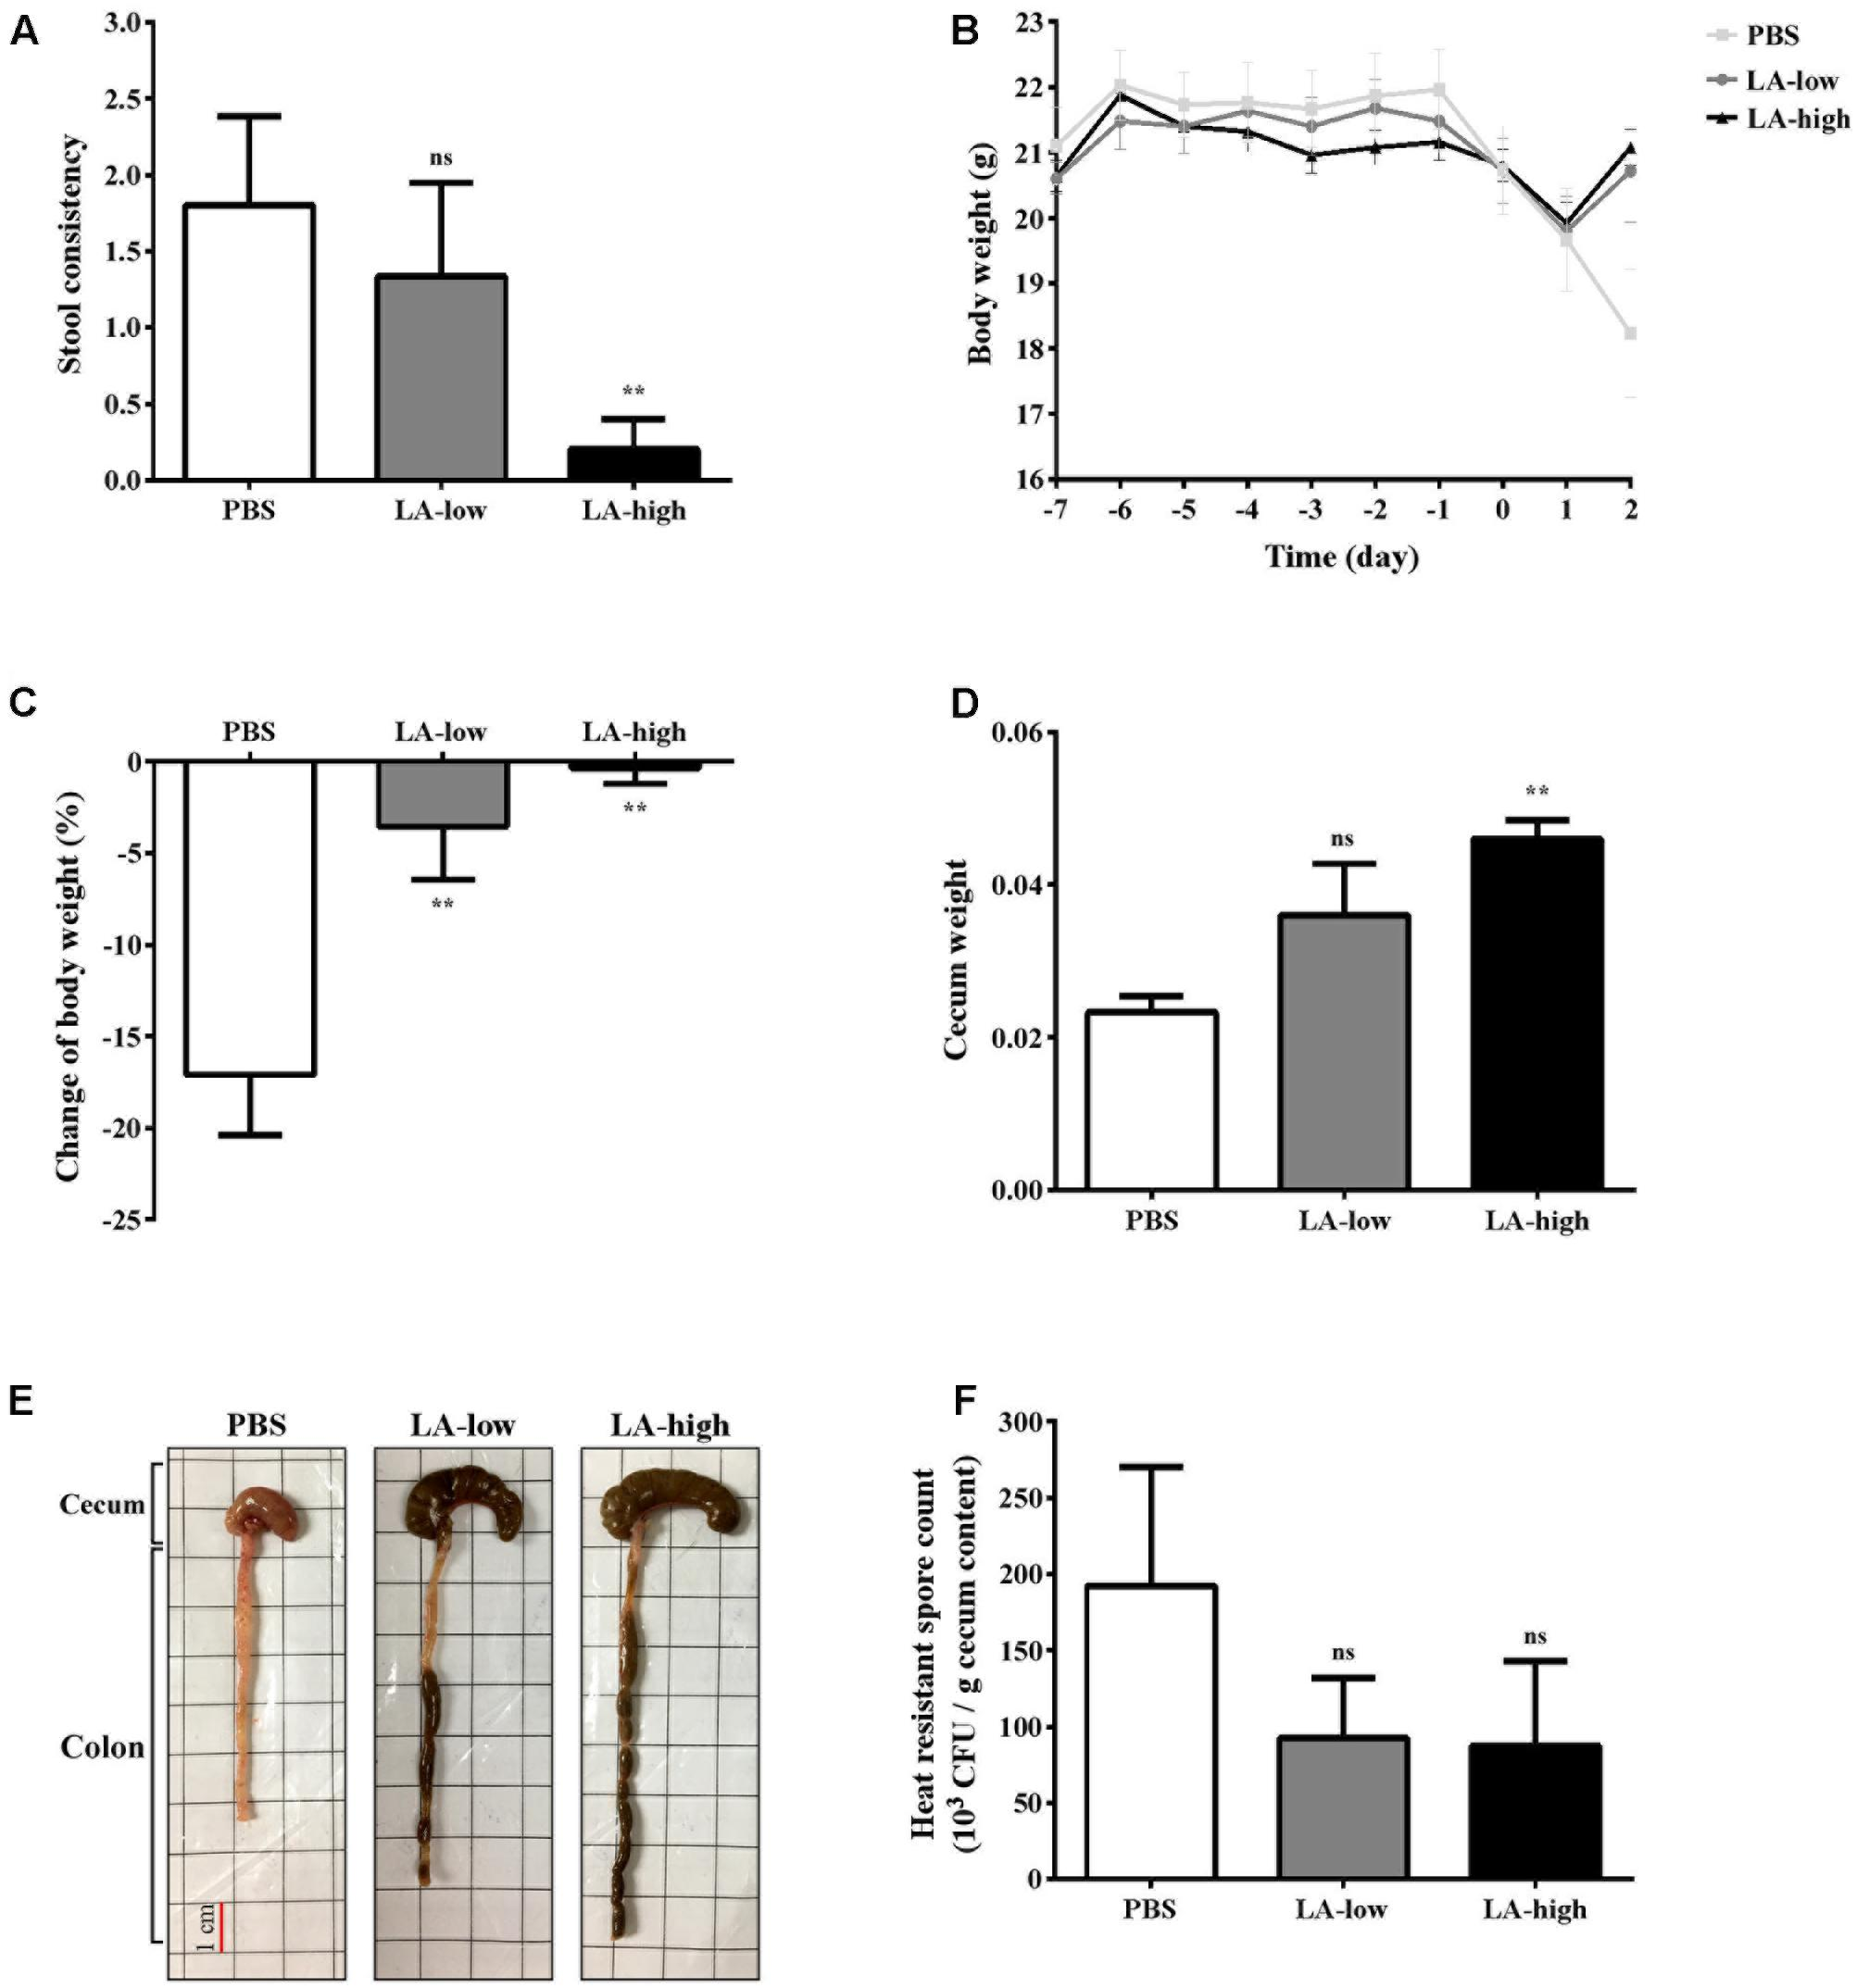 Frontiers | Lauric Acid Is an Inhibitor of Clostridium